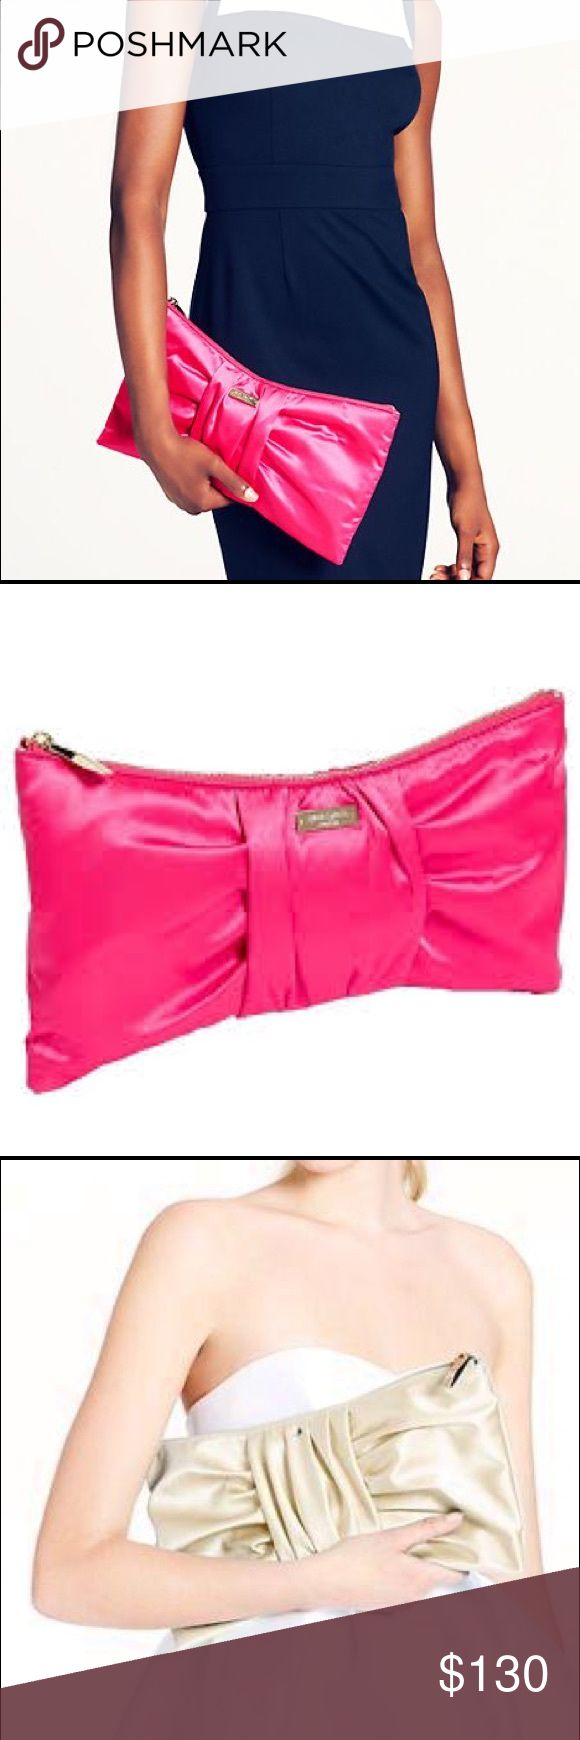 """NWT Kate Spade Silka Bow Clutch Fuchsia Pink Bag Brand new with tags but accidentally ripped off the tag while photographing.  Tag is now not attached and it inside the bag.  Fuchsia.  Dustbag included.  Features Handheld clutch crafted in luxe satin Featured in a bow shape that's gathered at the center. kate spade new york light gold staple on front. Zip top closure. Lined interior with a slip pocket. 6''h x 13''w x .5""""d kate spade Bags Clutches & Wristlets"""